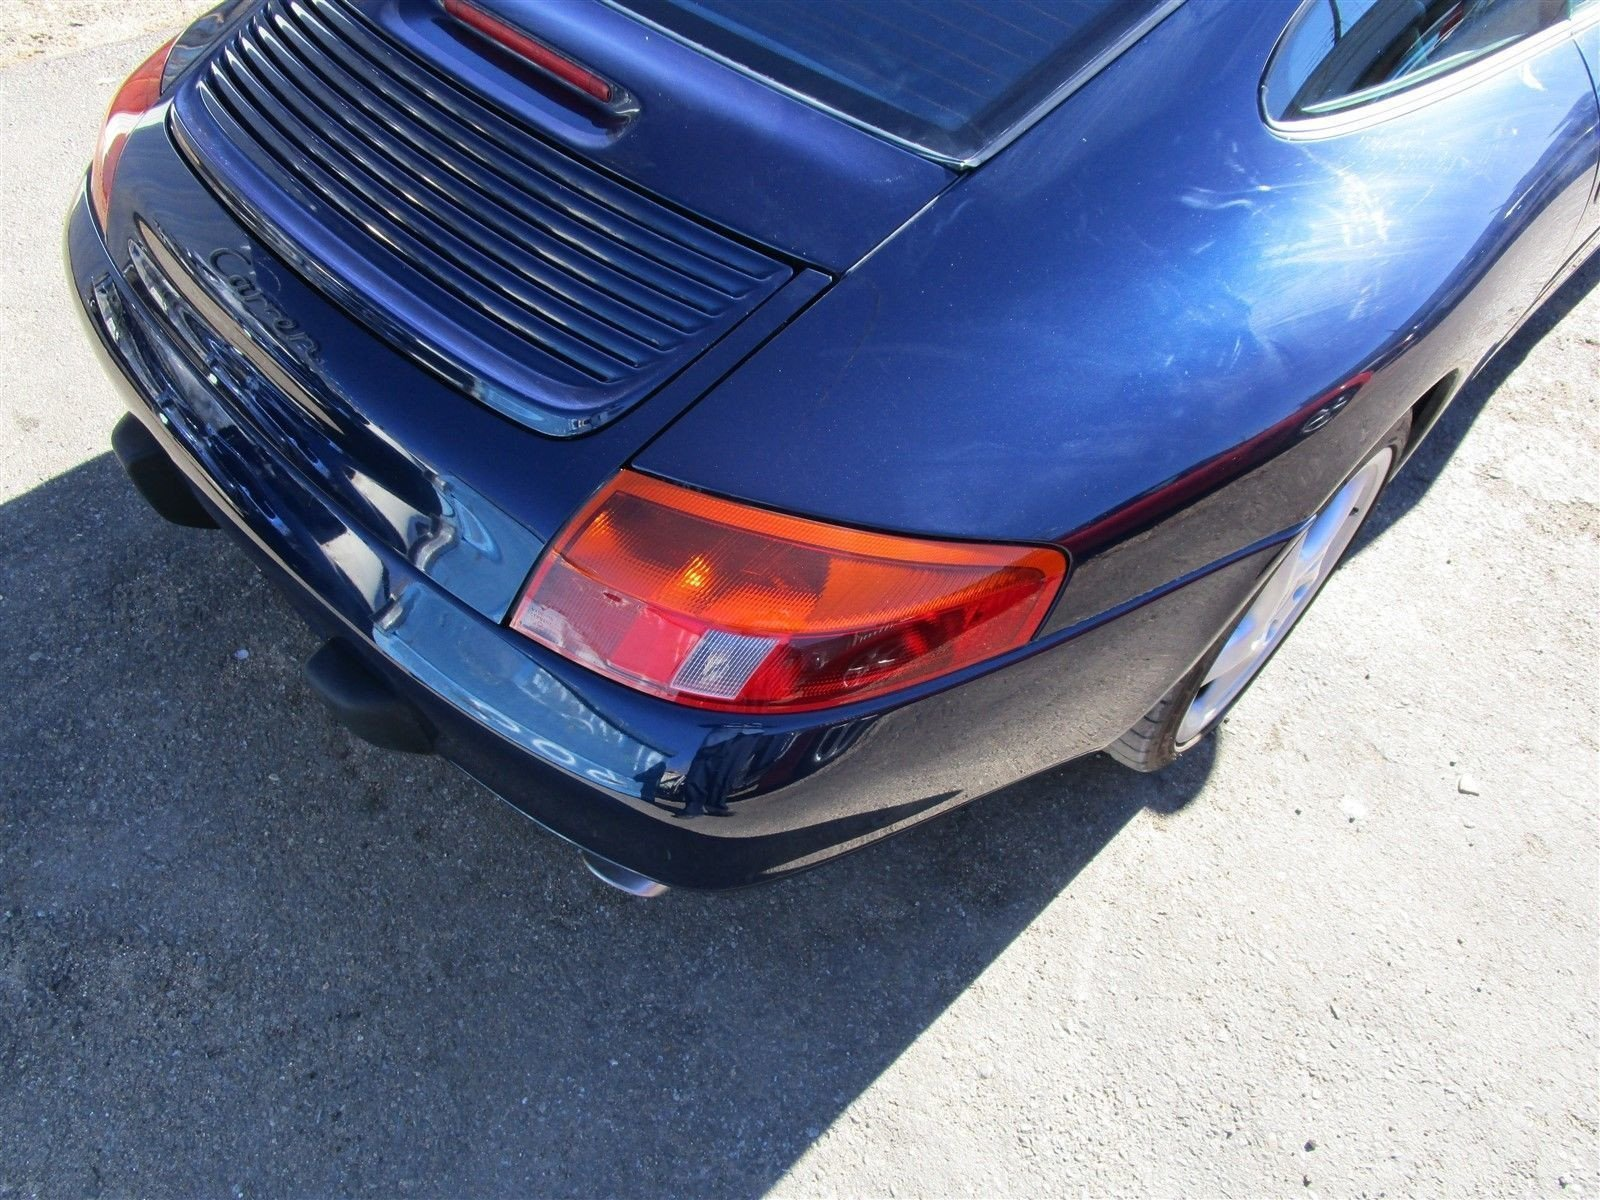 99 Carrera 911 RWD Porsche 996 Coupe Parting Out parts car 65,808